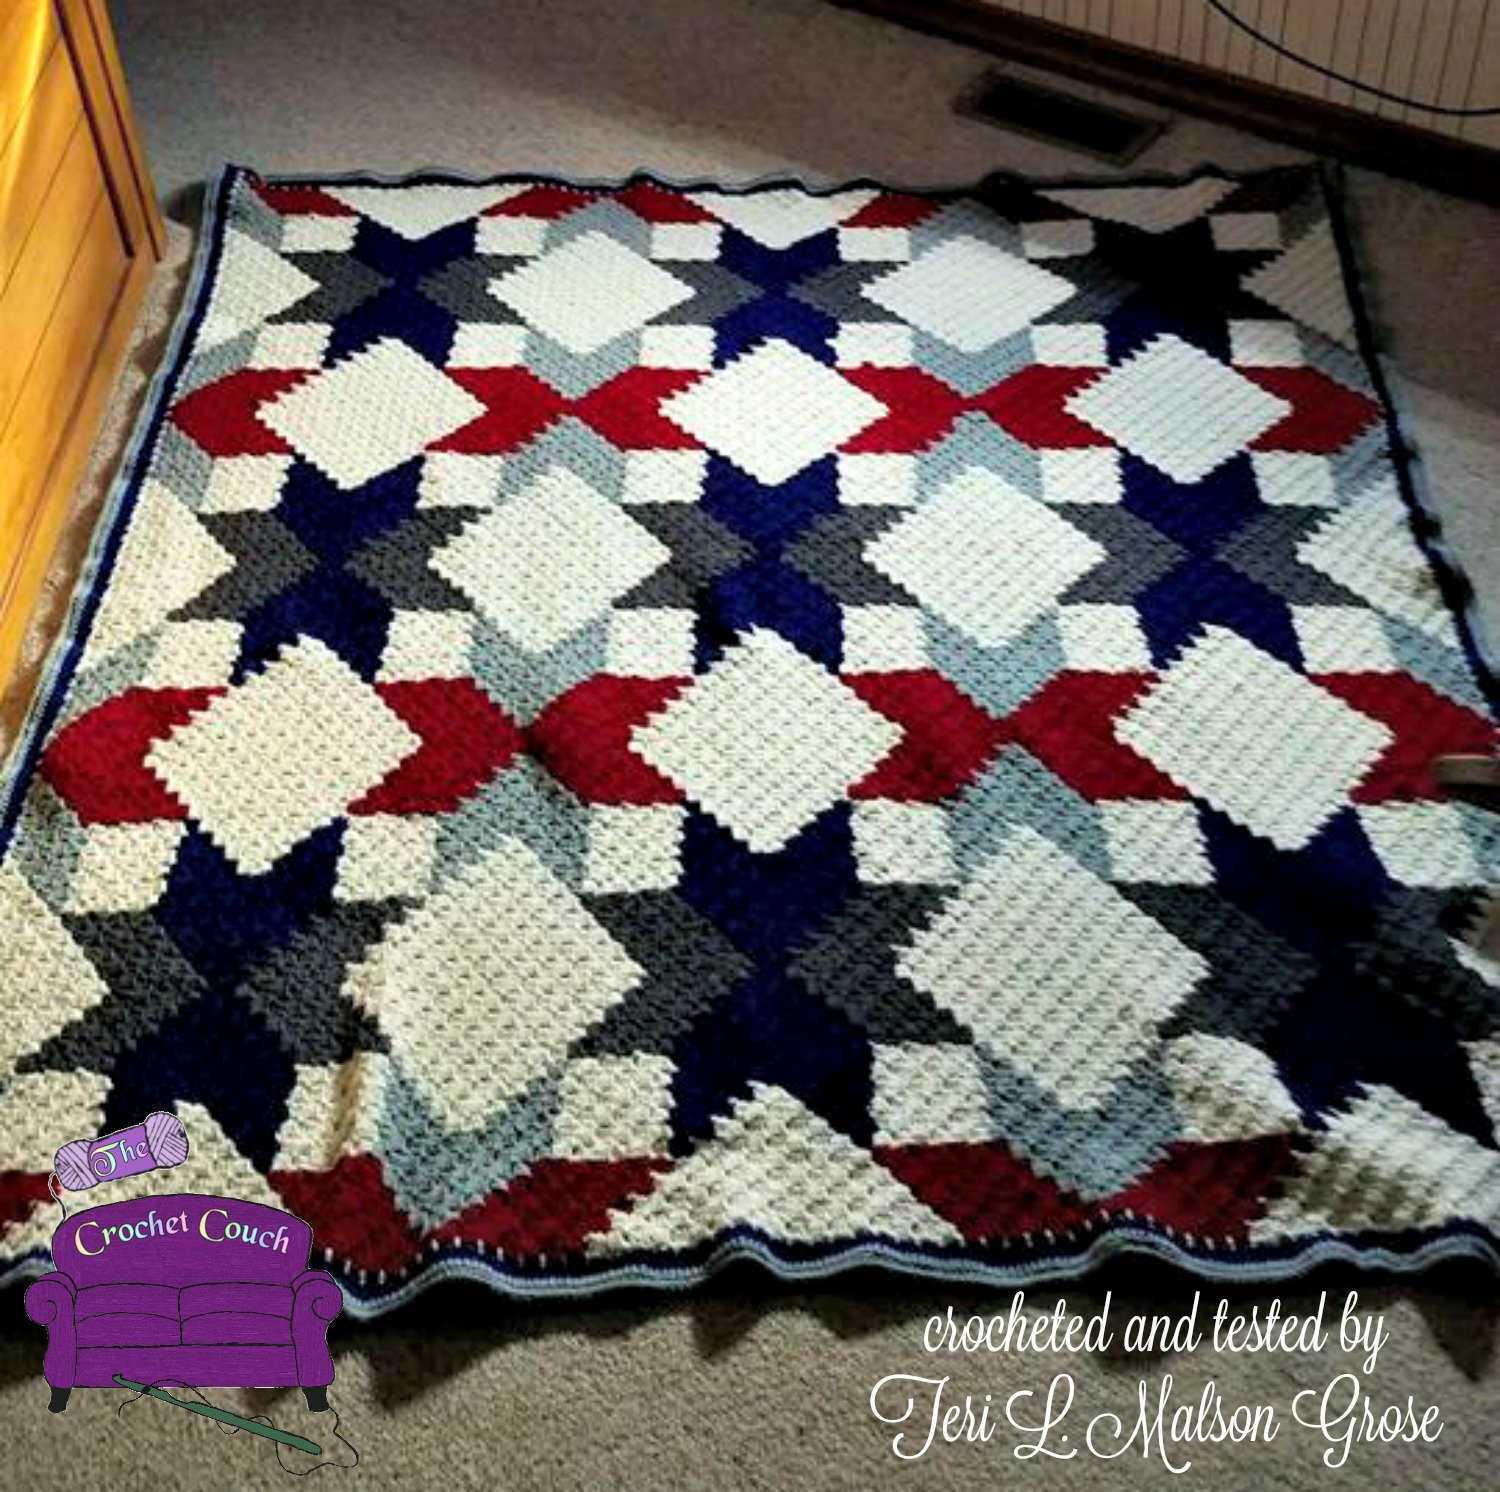 Quilted Stars Large Blanket, C2C Crochet Pattern, Written Row Counts